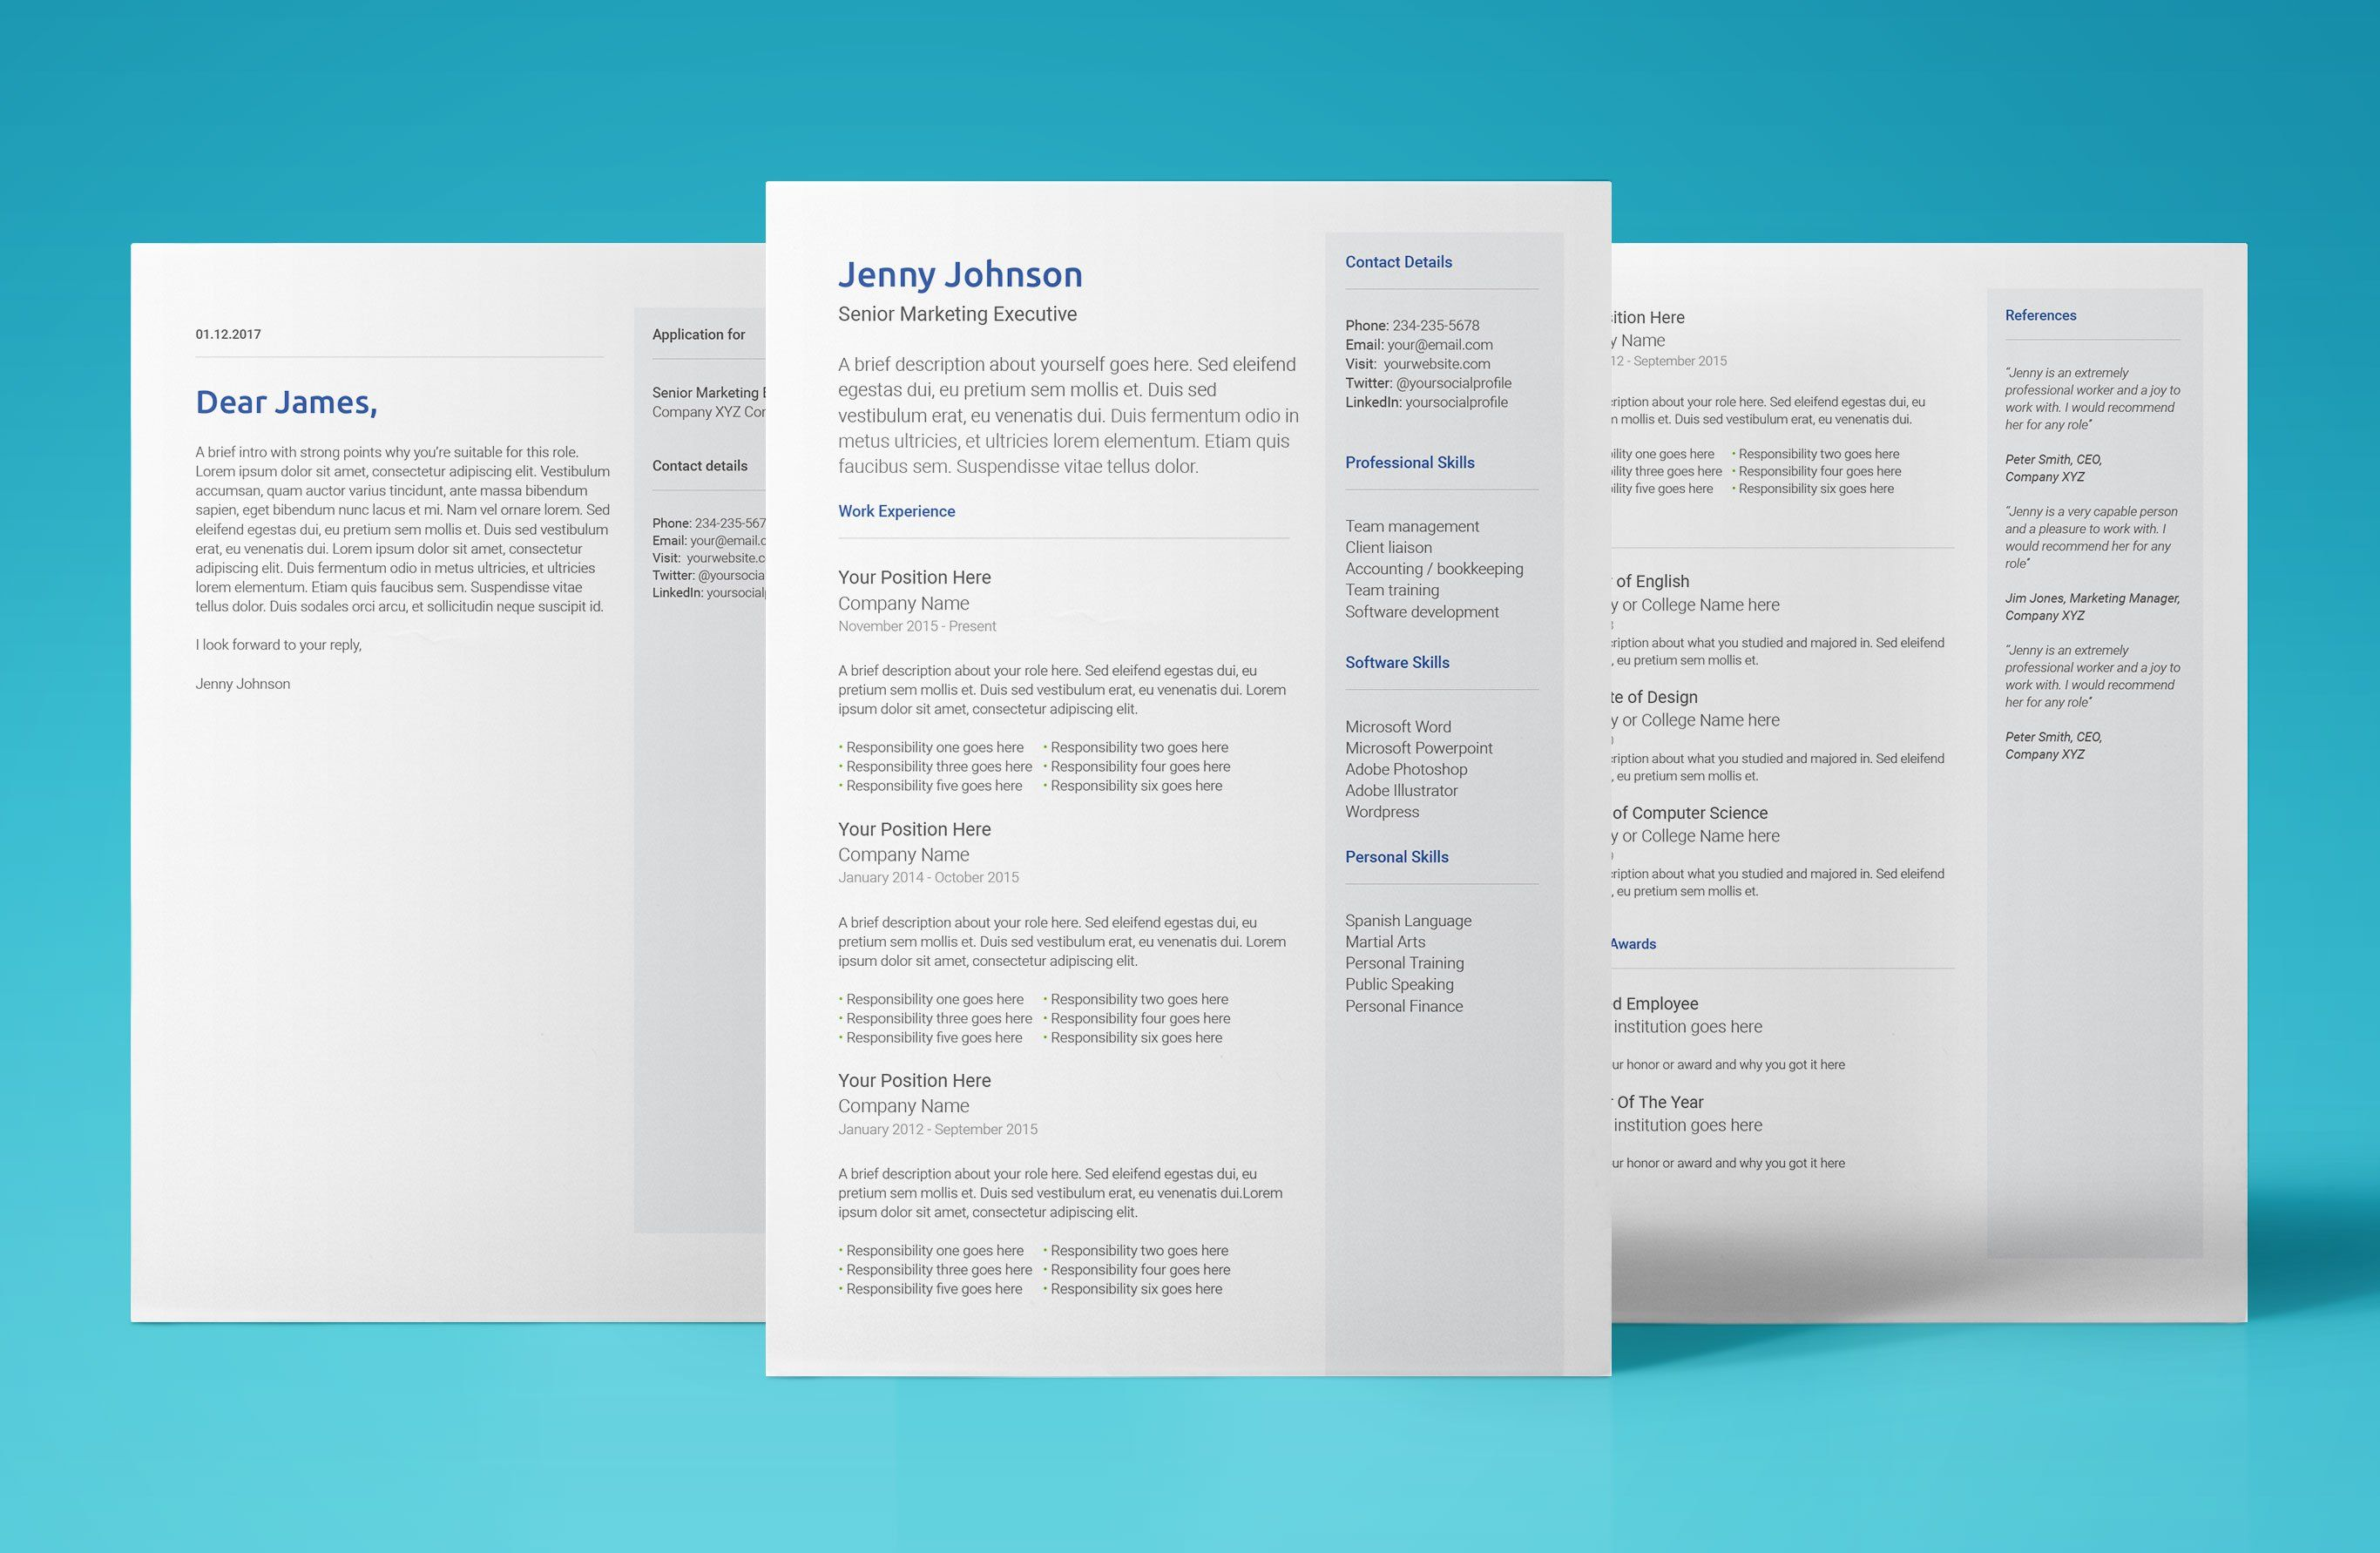 Sample Resume Templates Google Docs in 2020 Downloadable